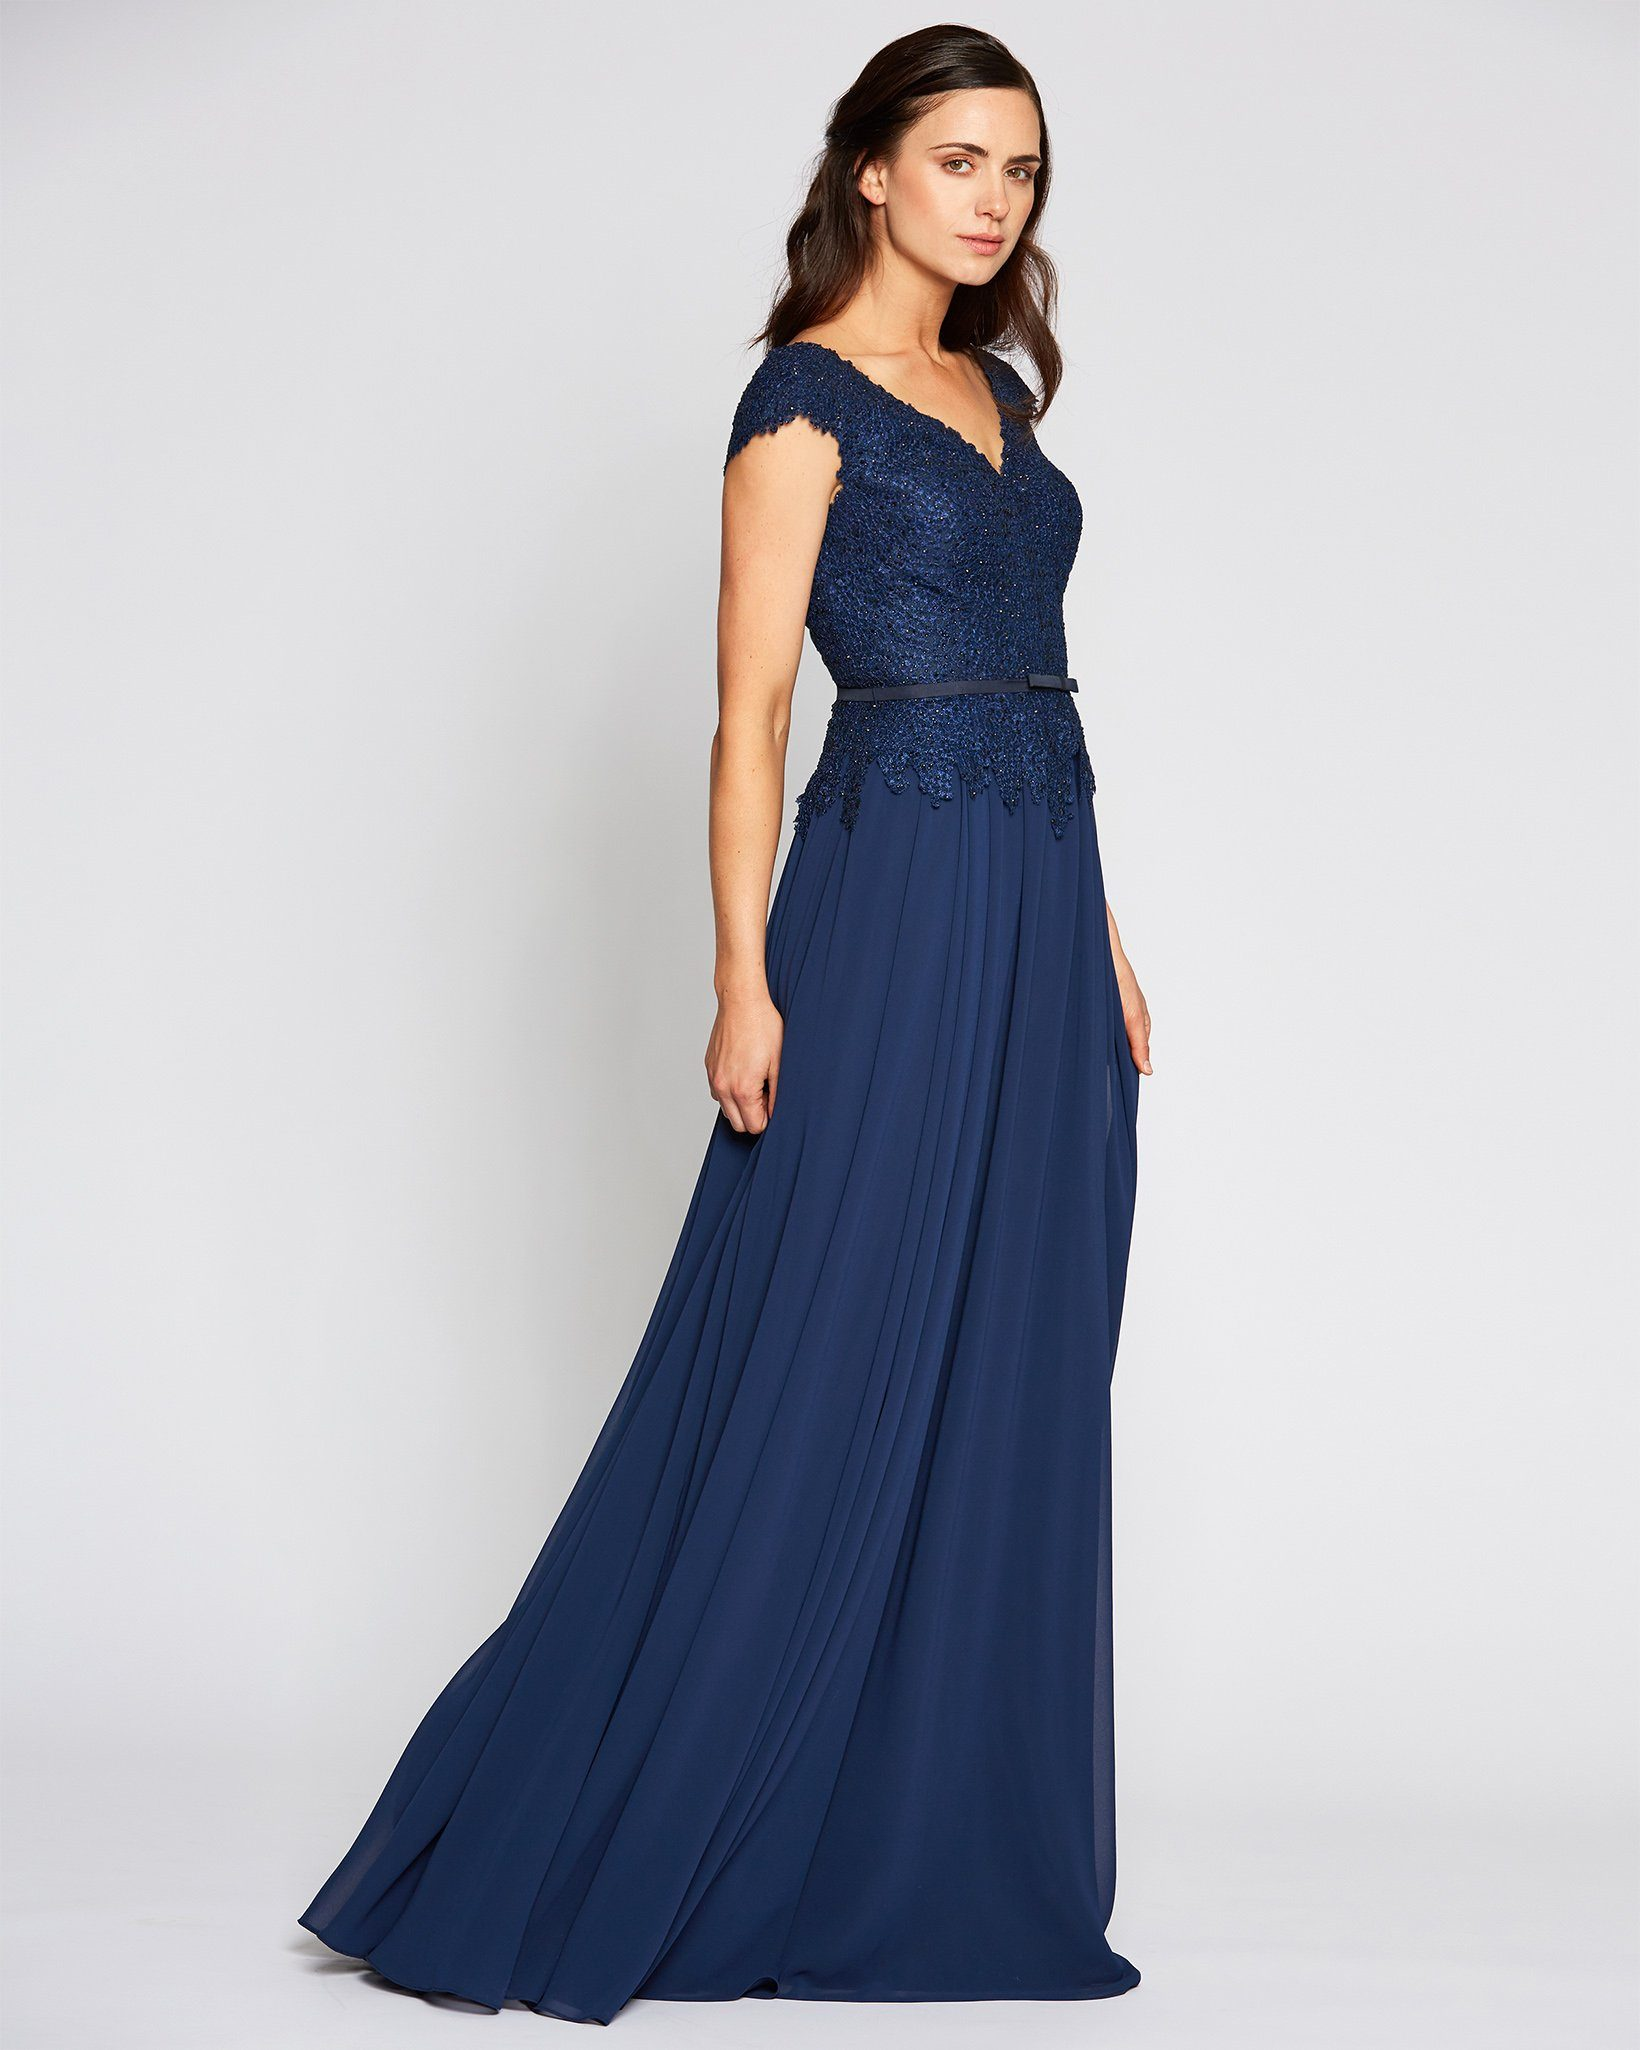 Navy Blue Beaded Cap Sleeve Evening Dress